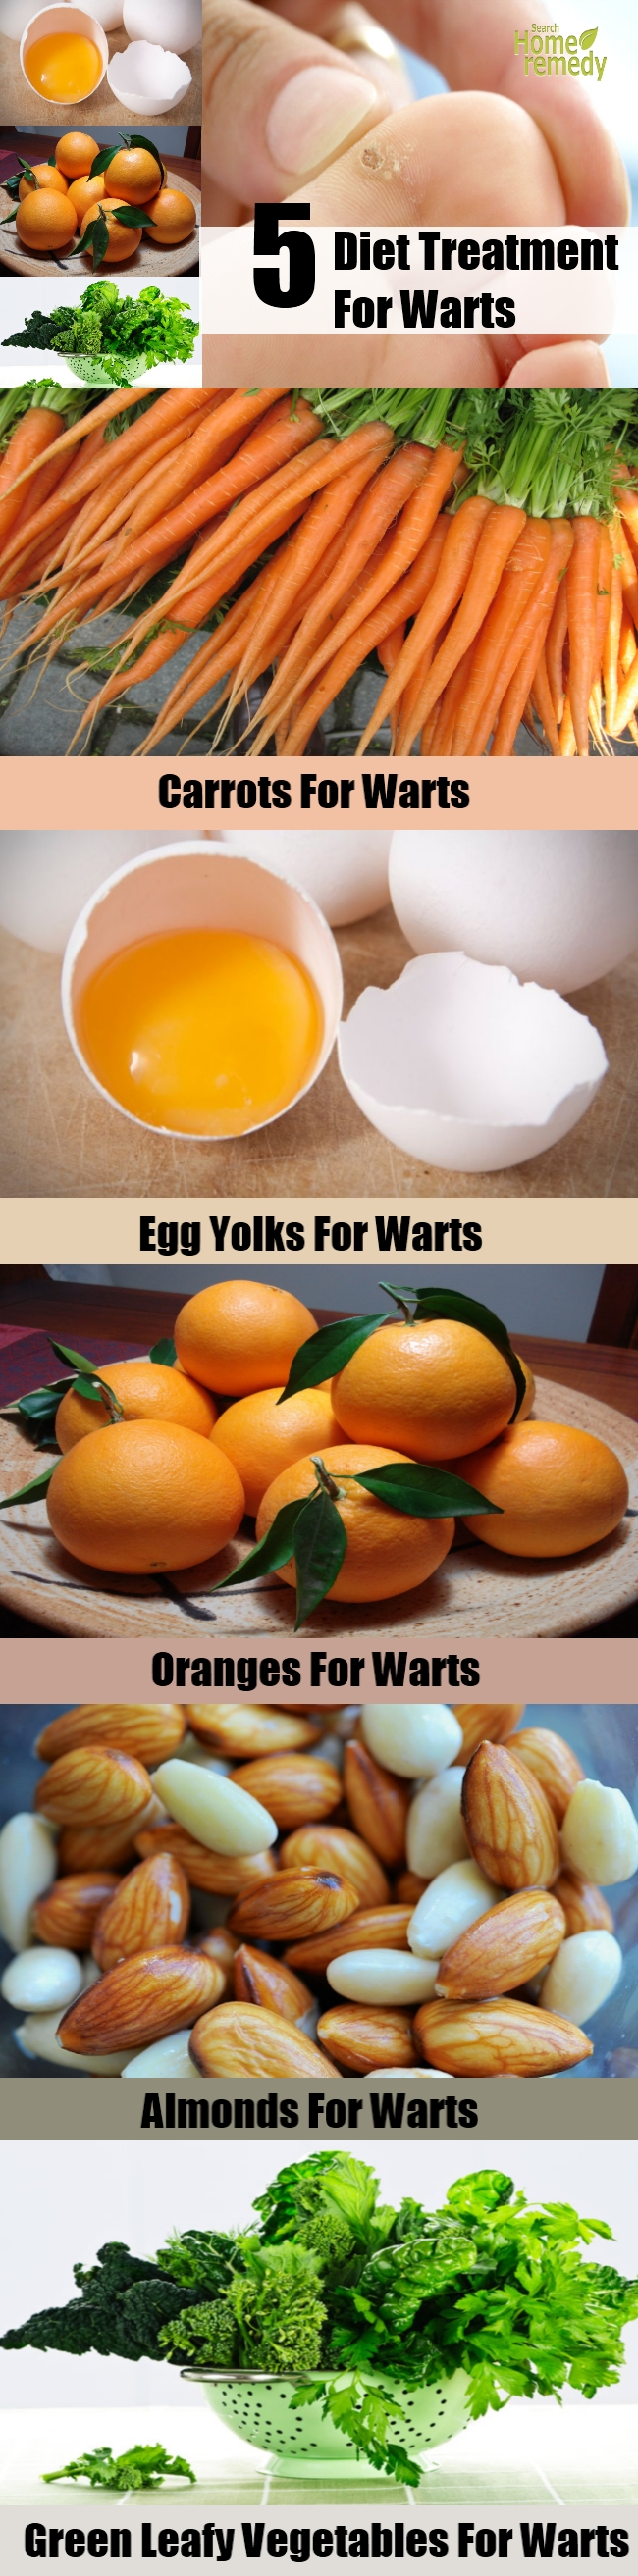 5 Effective Diet Treatment For Warts